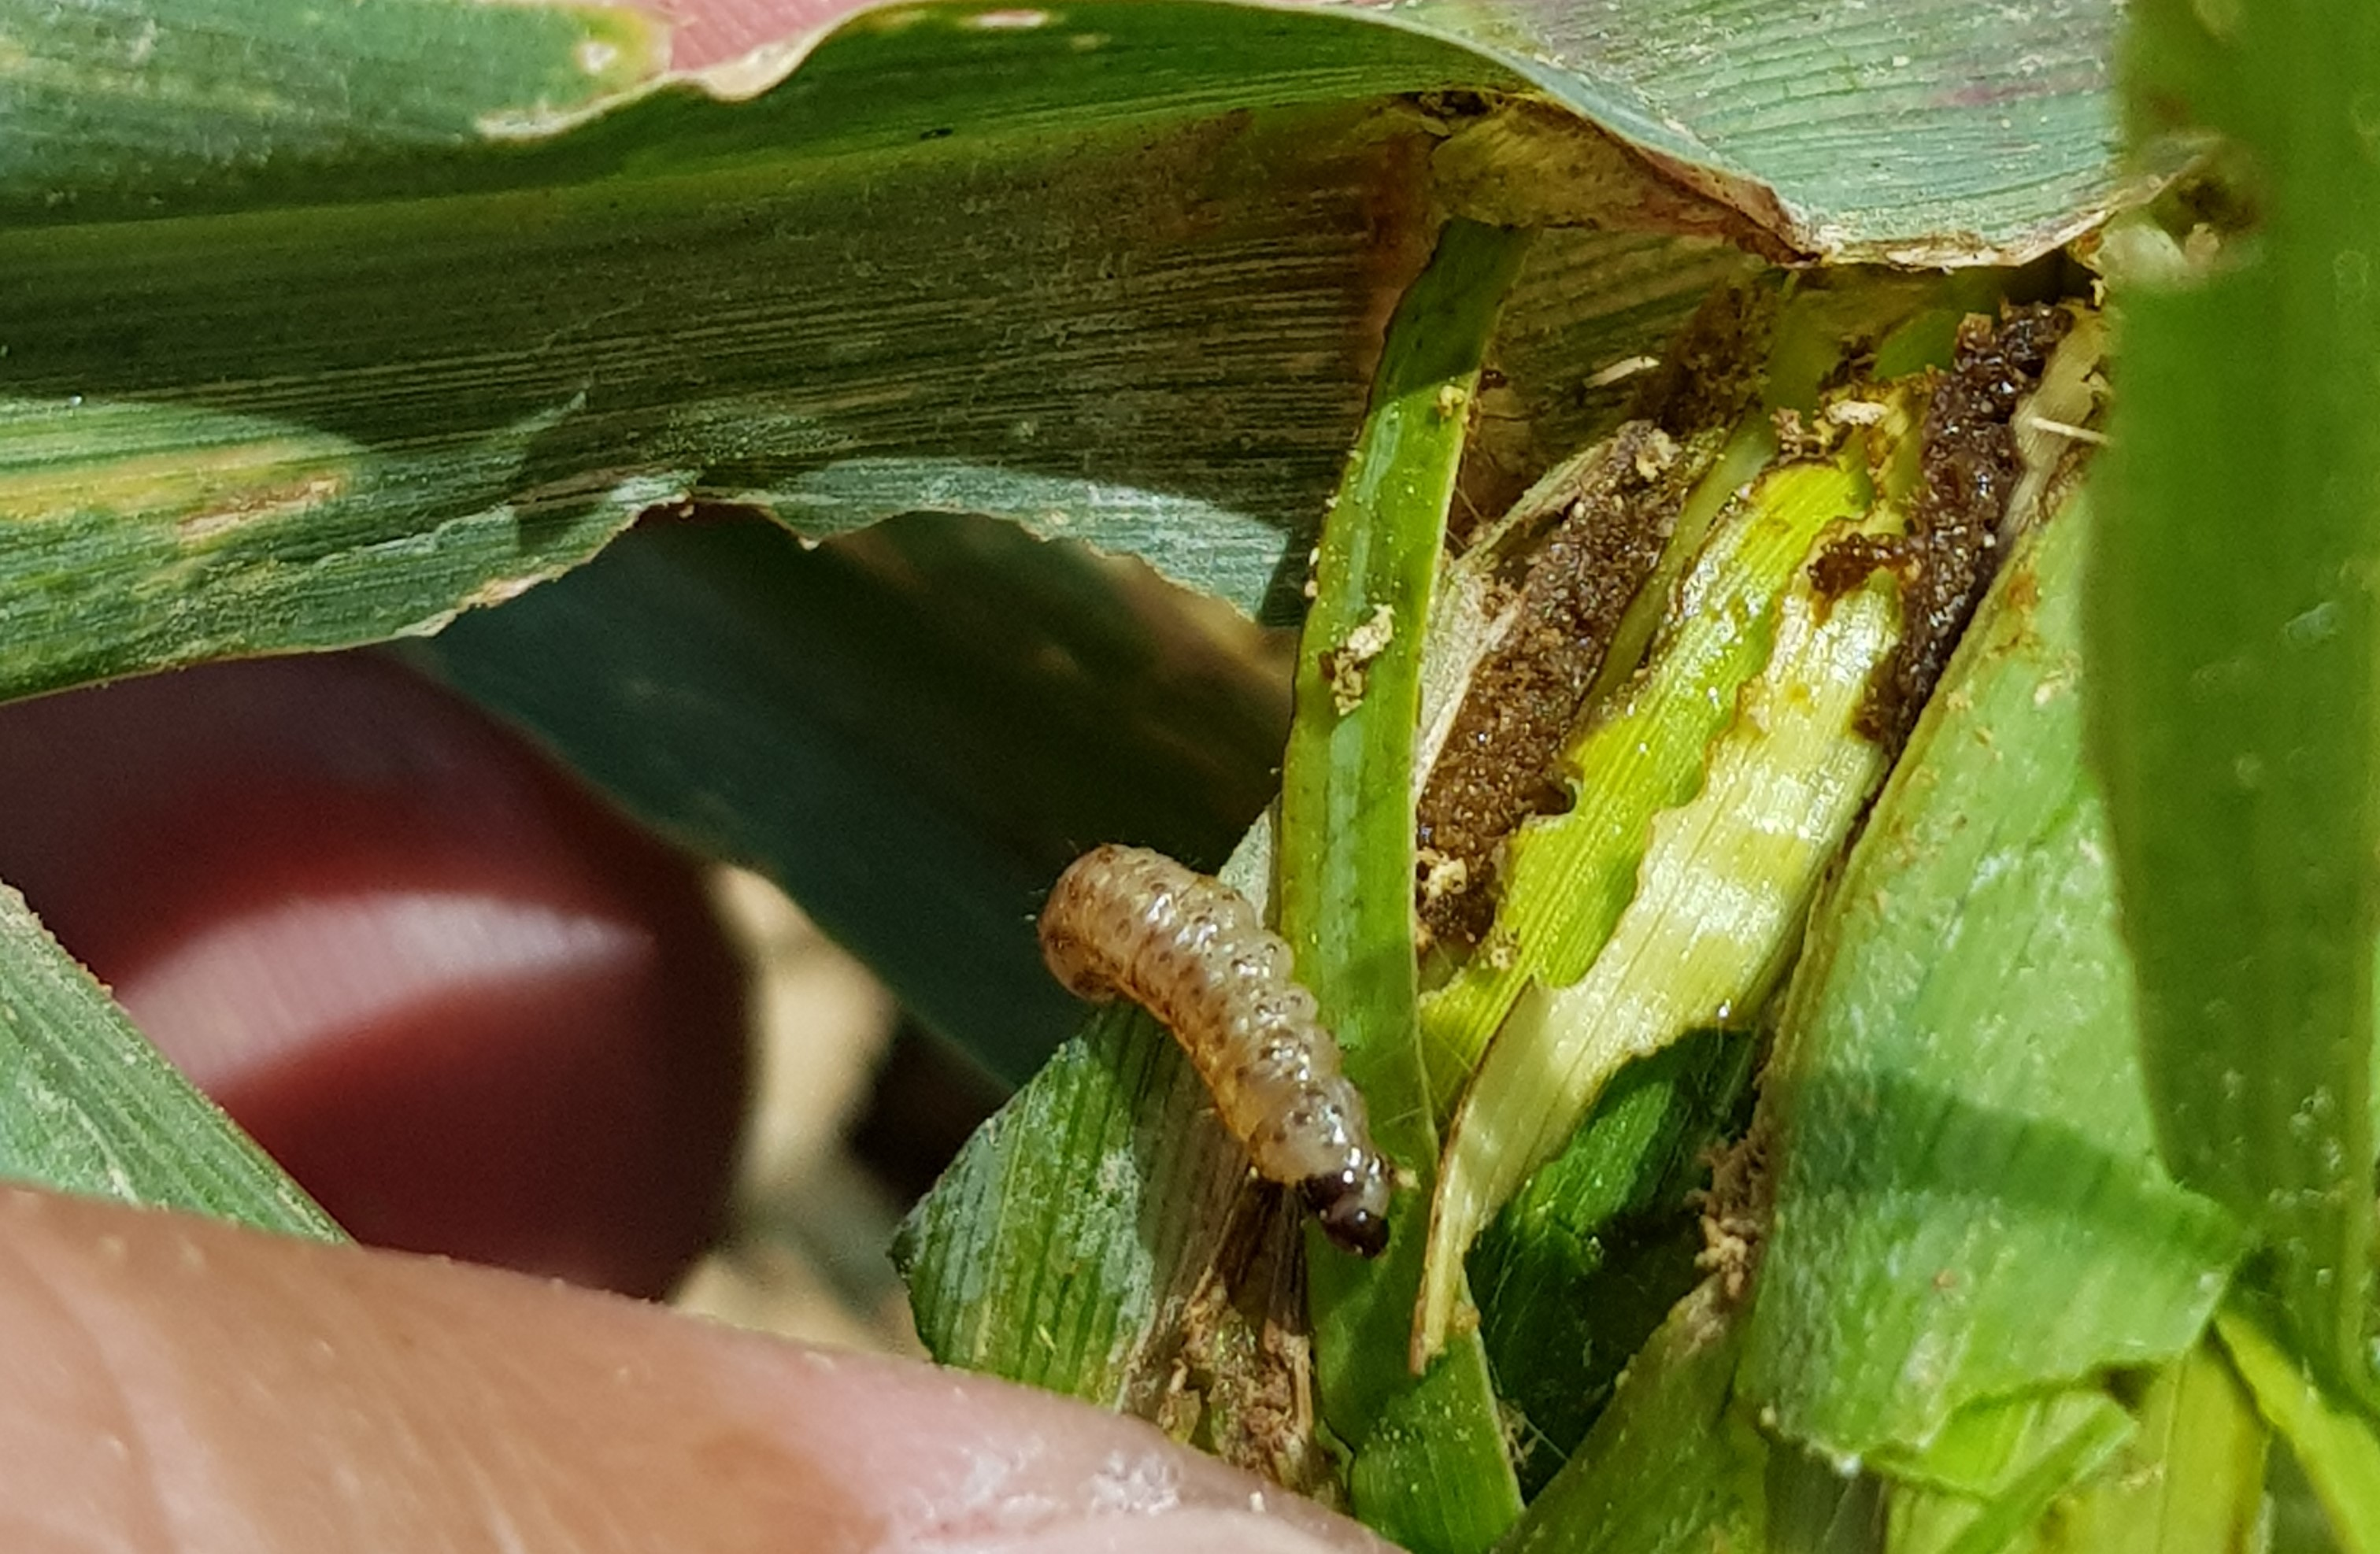 What are the harmful effects of stem borer on maize crop?